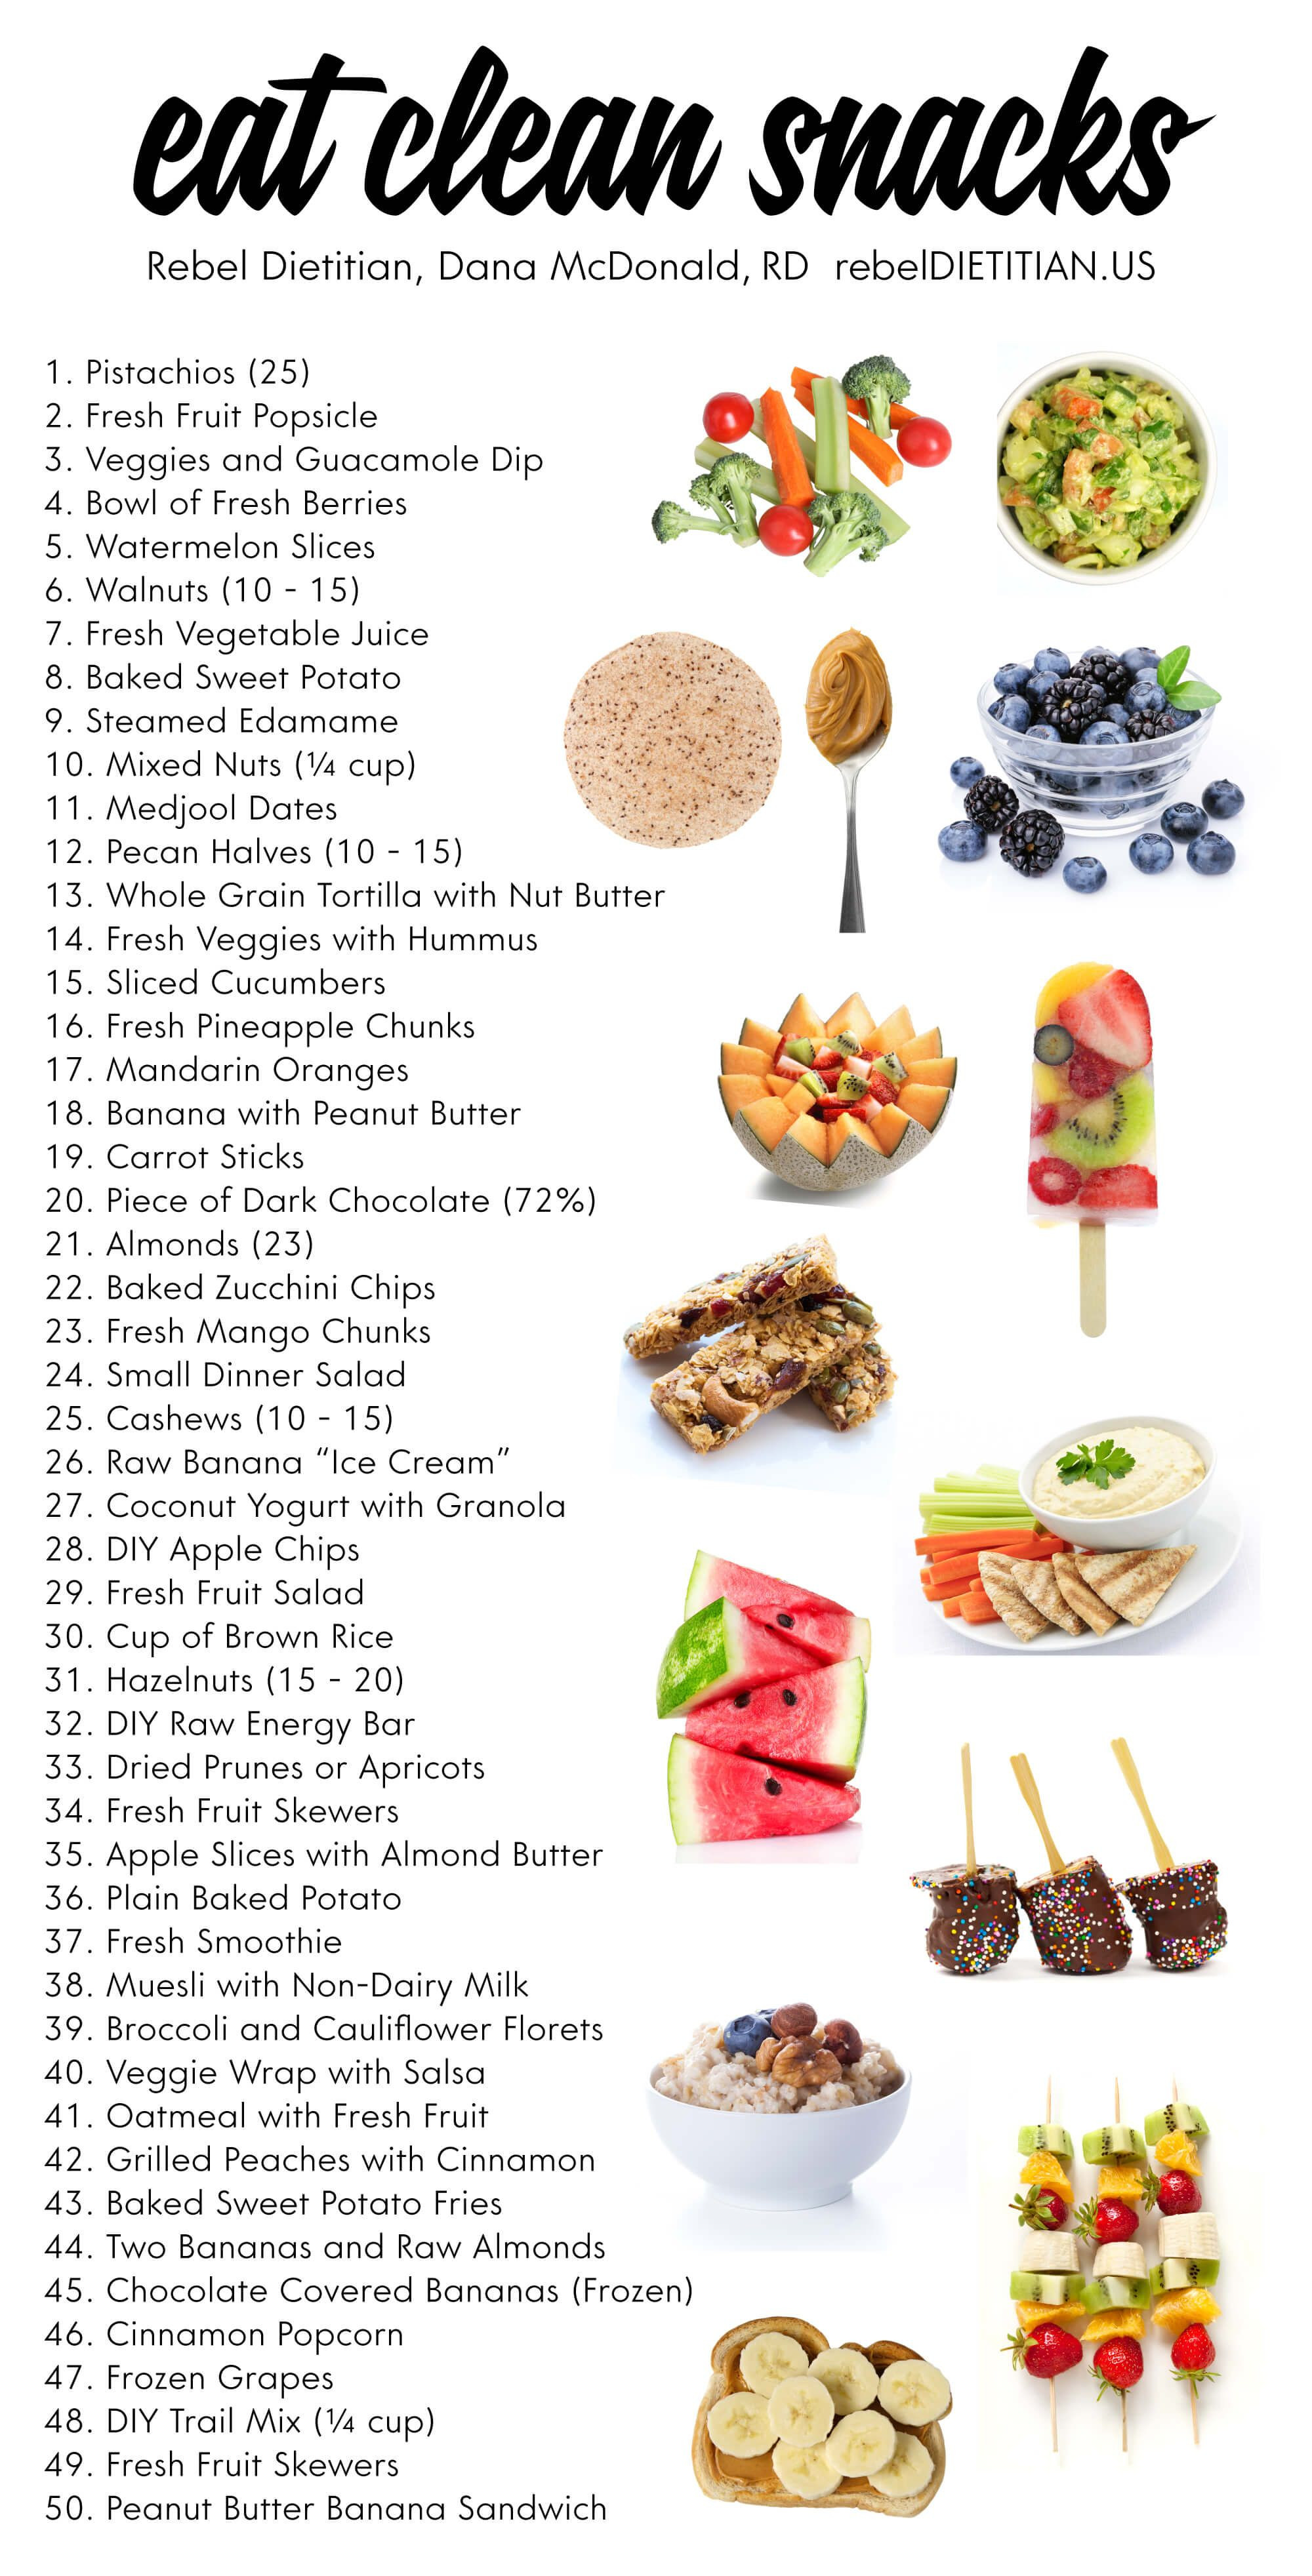 Healthy Snacks While Dieting  Eat clean snacks health nutrition foodfacts s